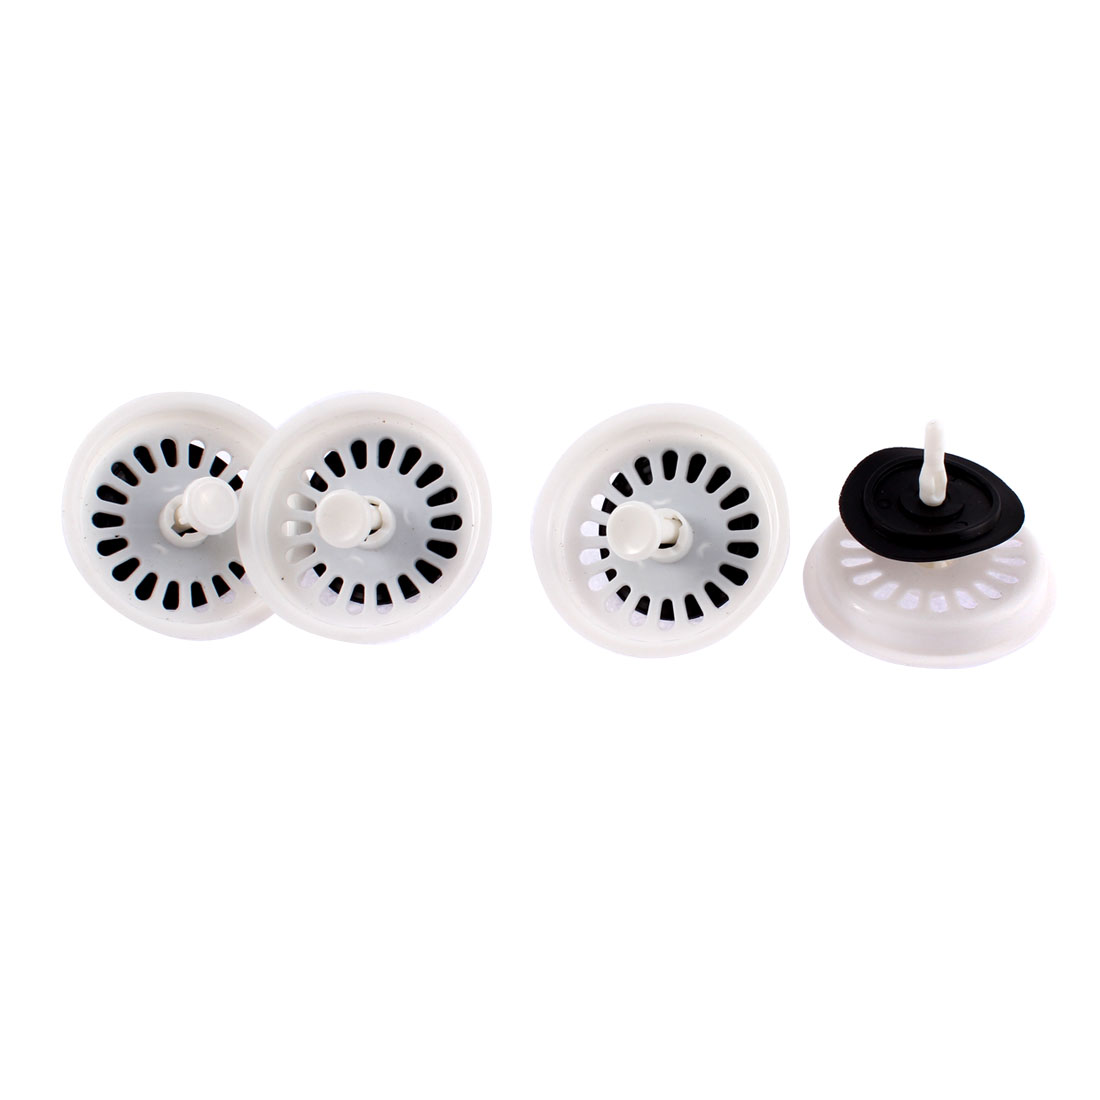 4 Pcs Houshold Flat Bottom Ring Sink Strainer Filter Stopper 80mm Dia